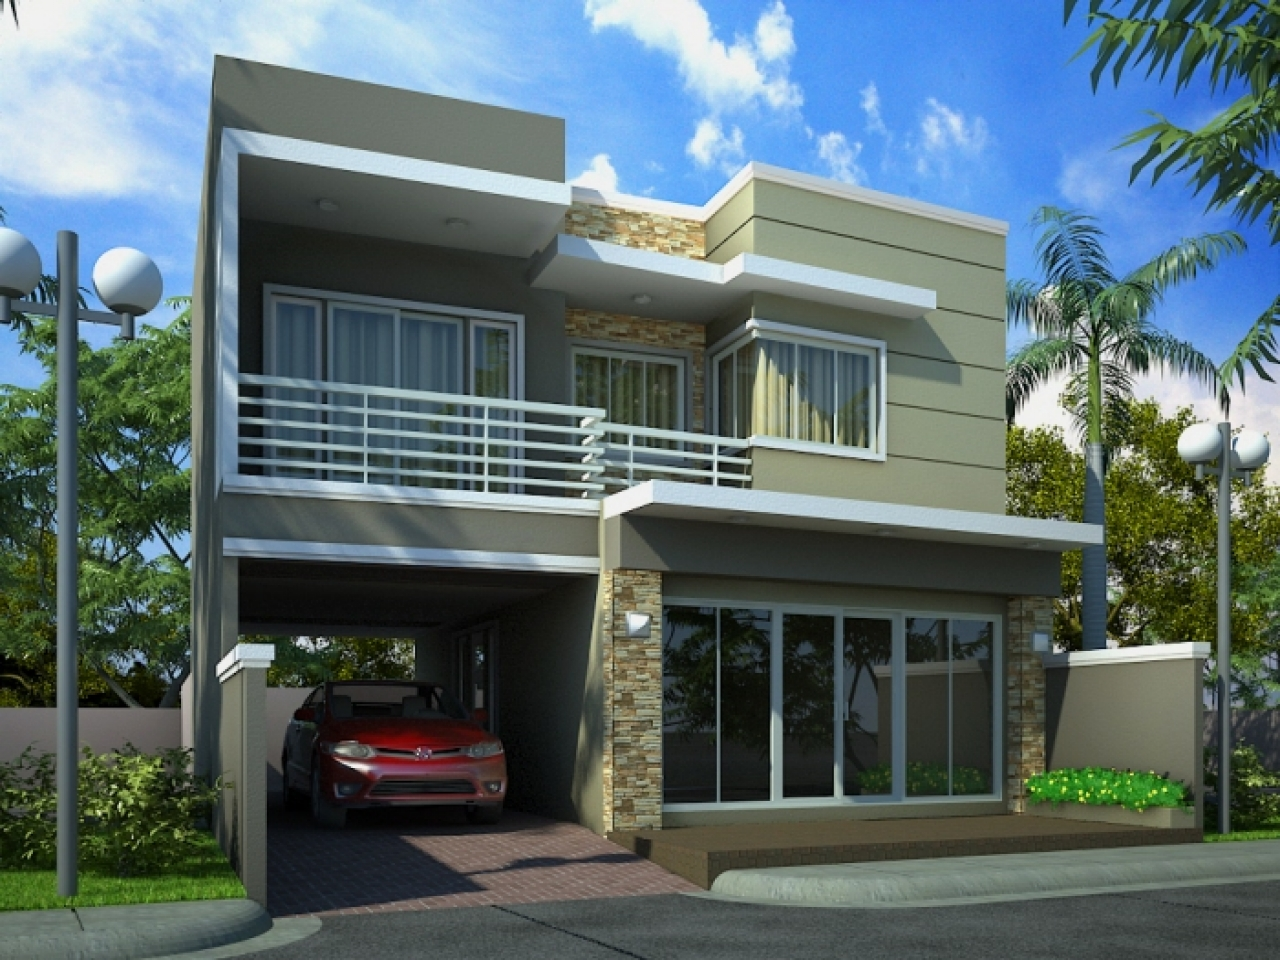 Front Elevation House Photo Gallery : Front elevation house photo gallery modern